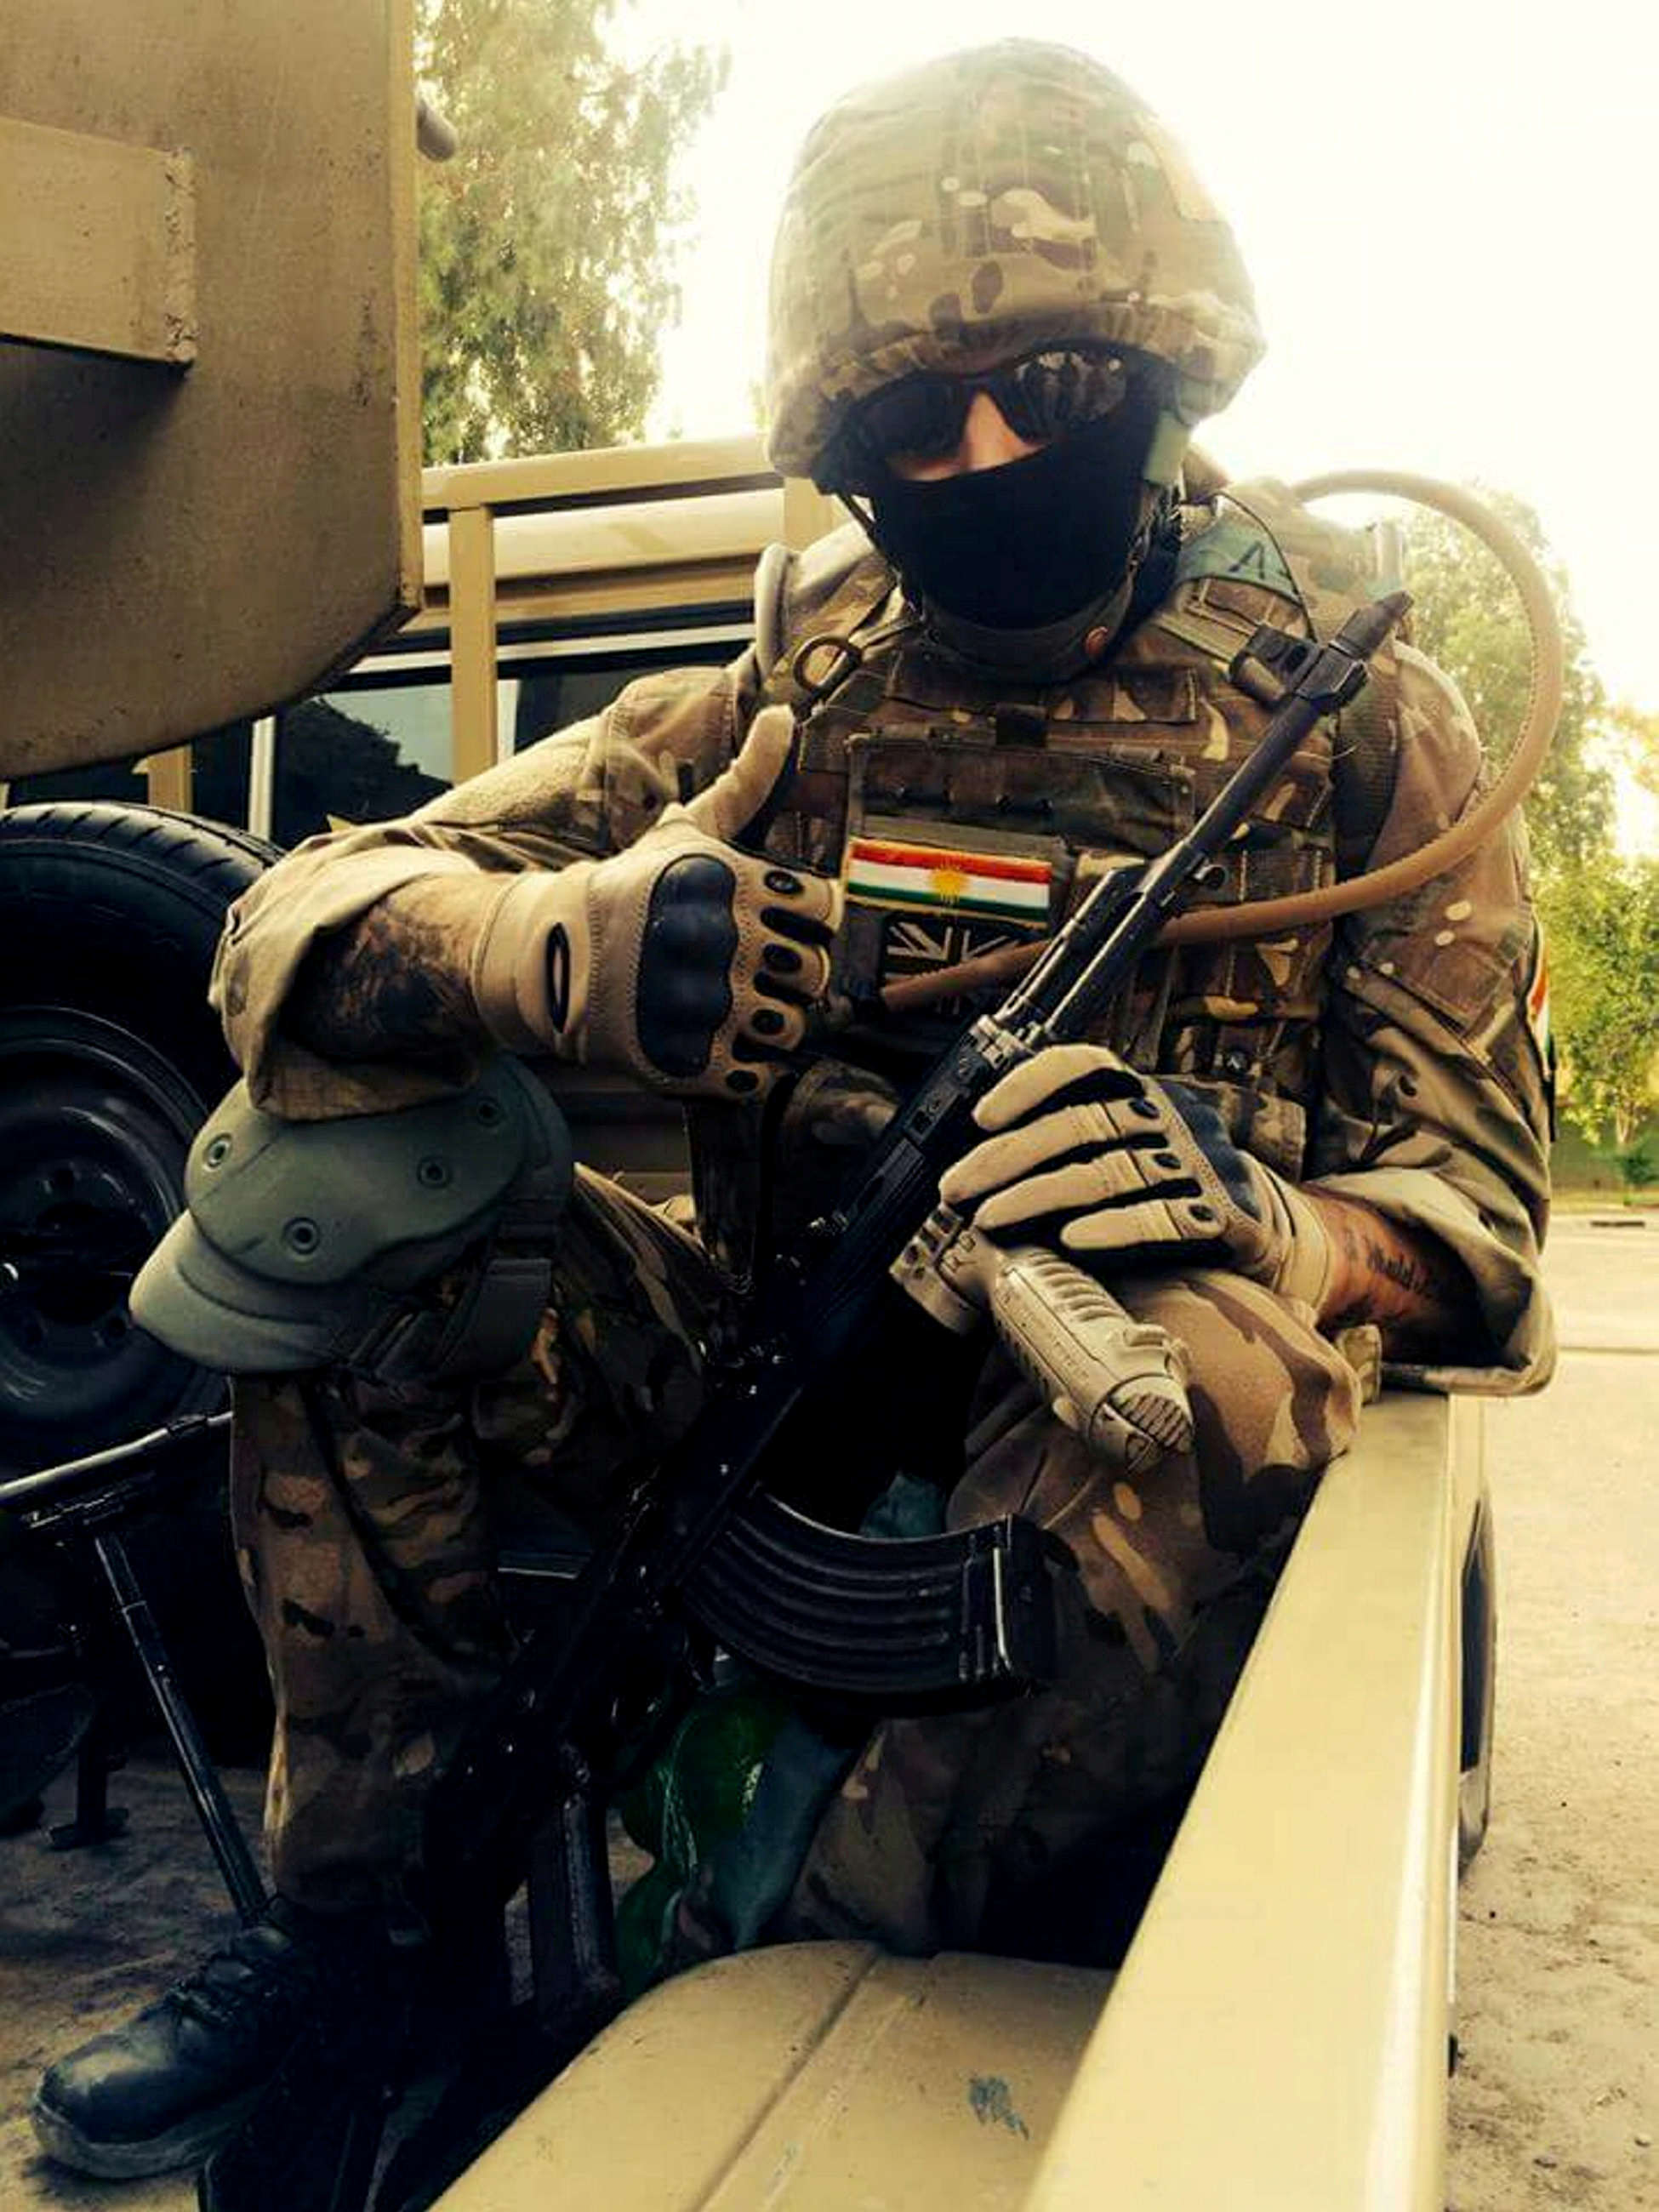 Story Of Ex Soldier Arrested When He Returned To UK From Fighting ISIS SWNS ISIS SOLDIER 09